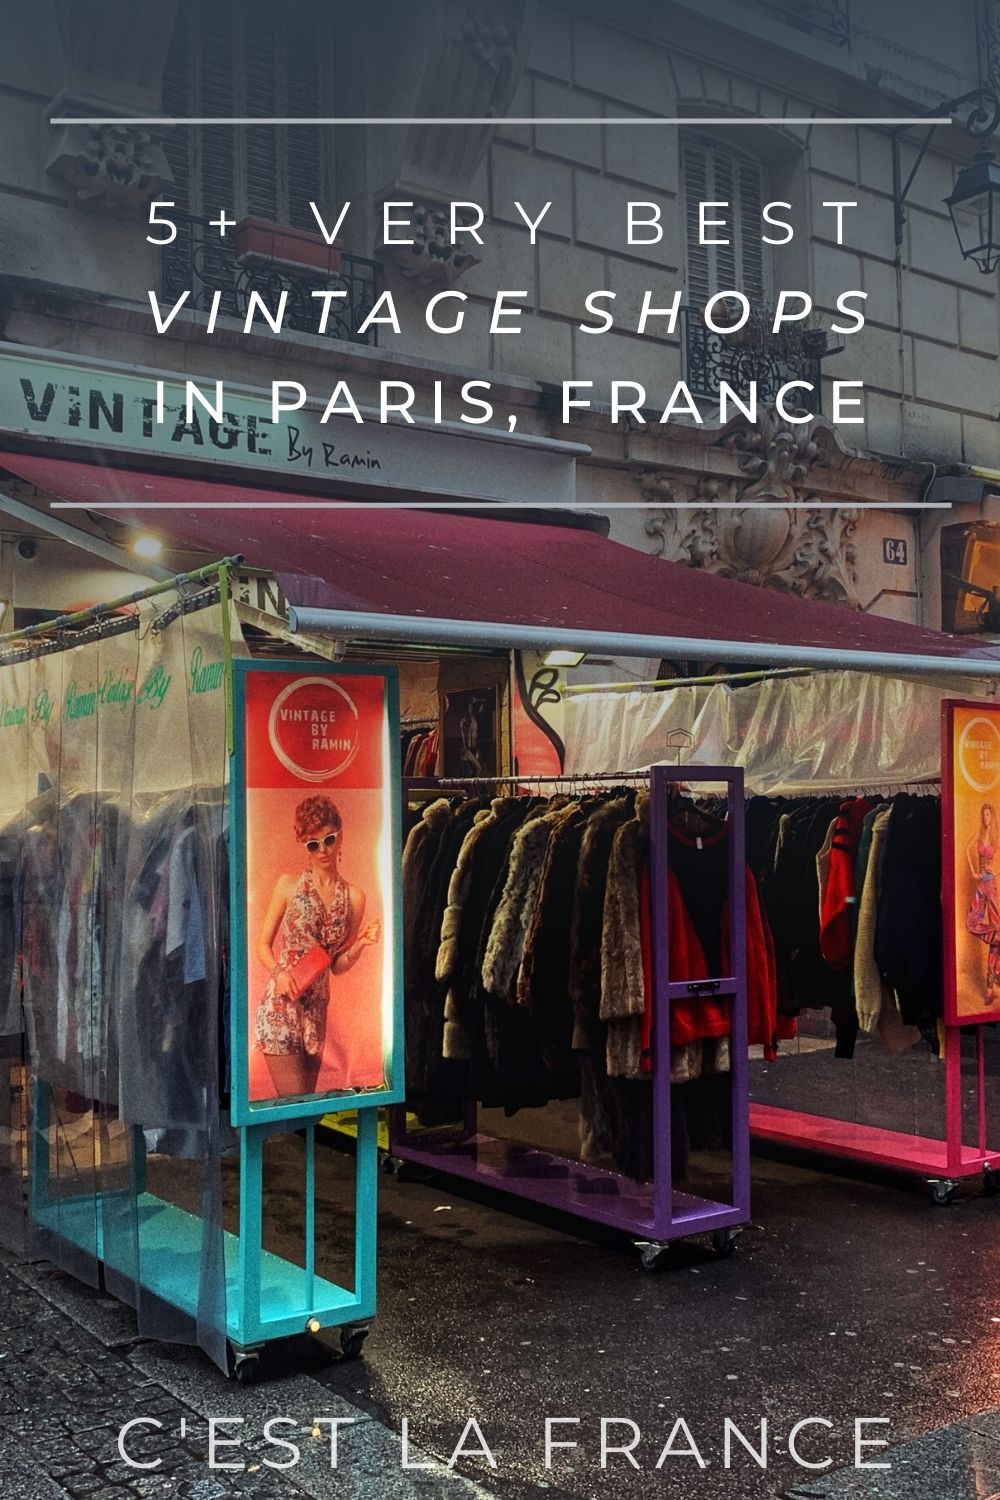 5+ vintage shopping experiences in paris you'll love. Looking for the best thrift stores in paris? here's your complete guide to offbeat France!